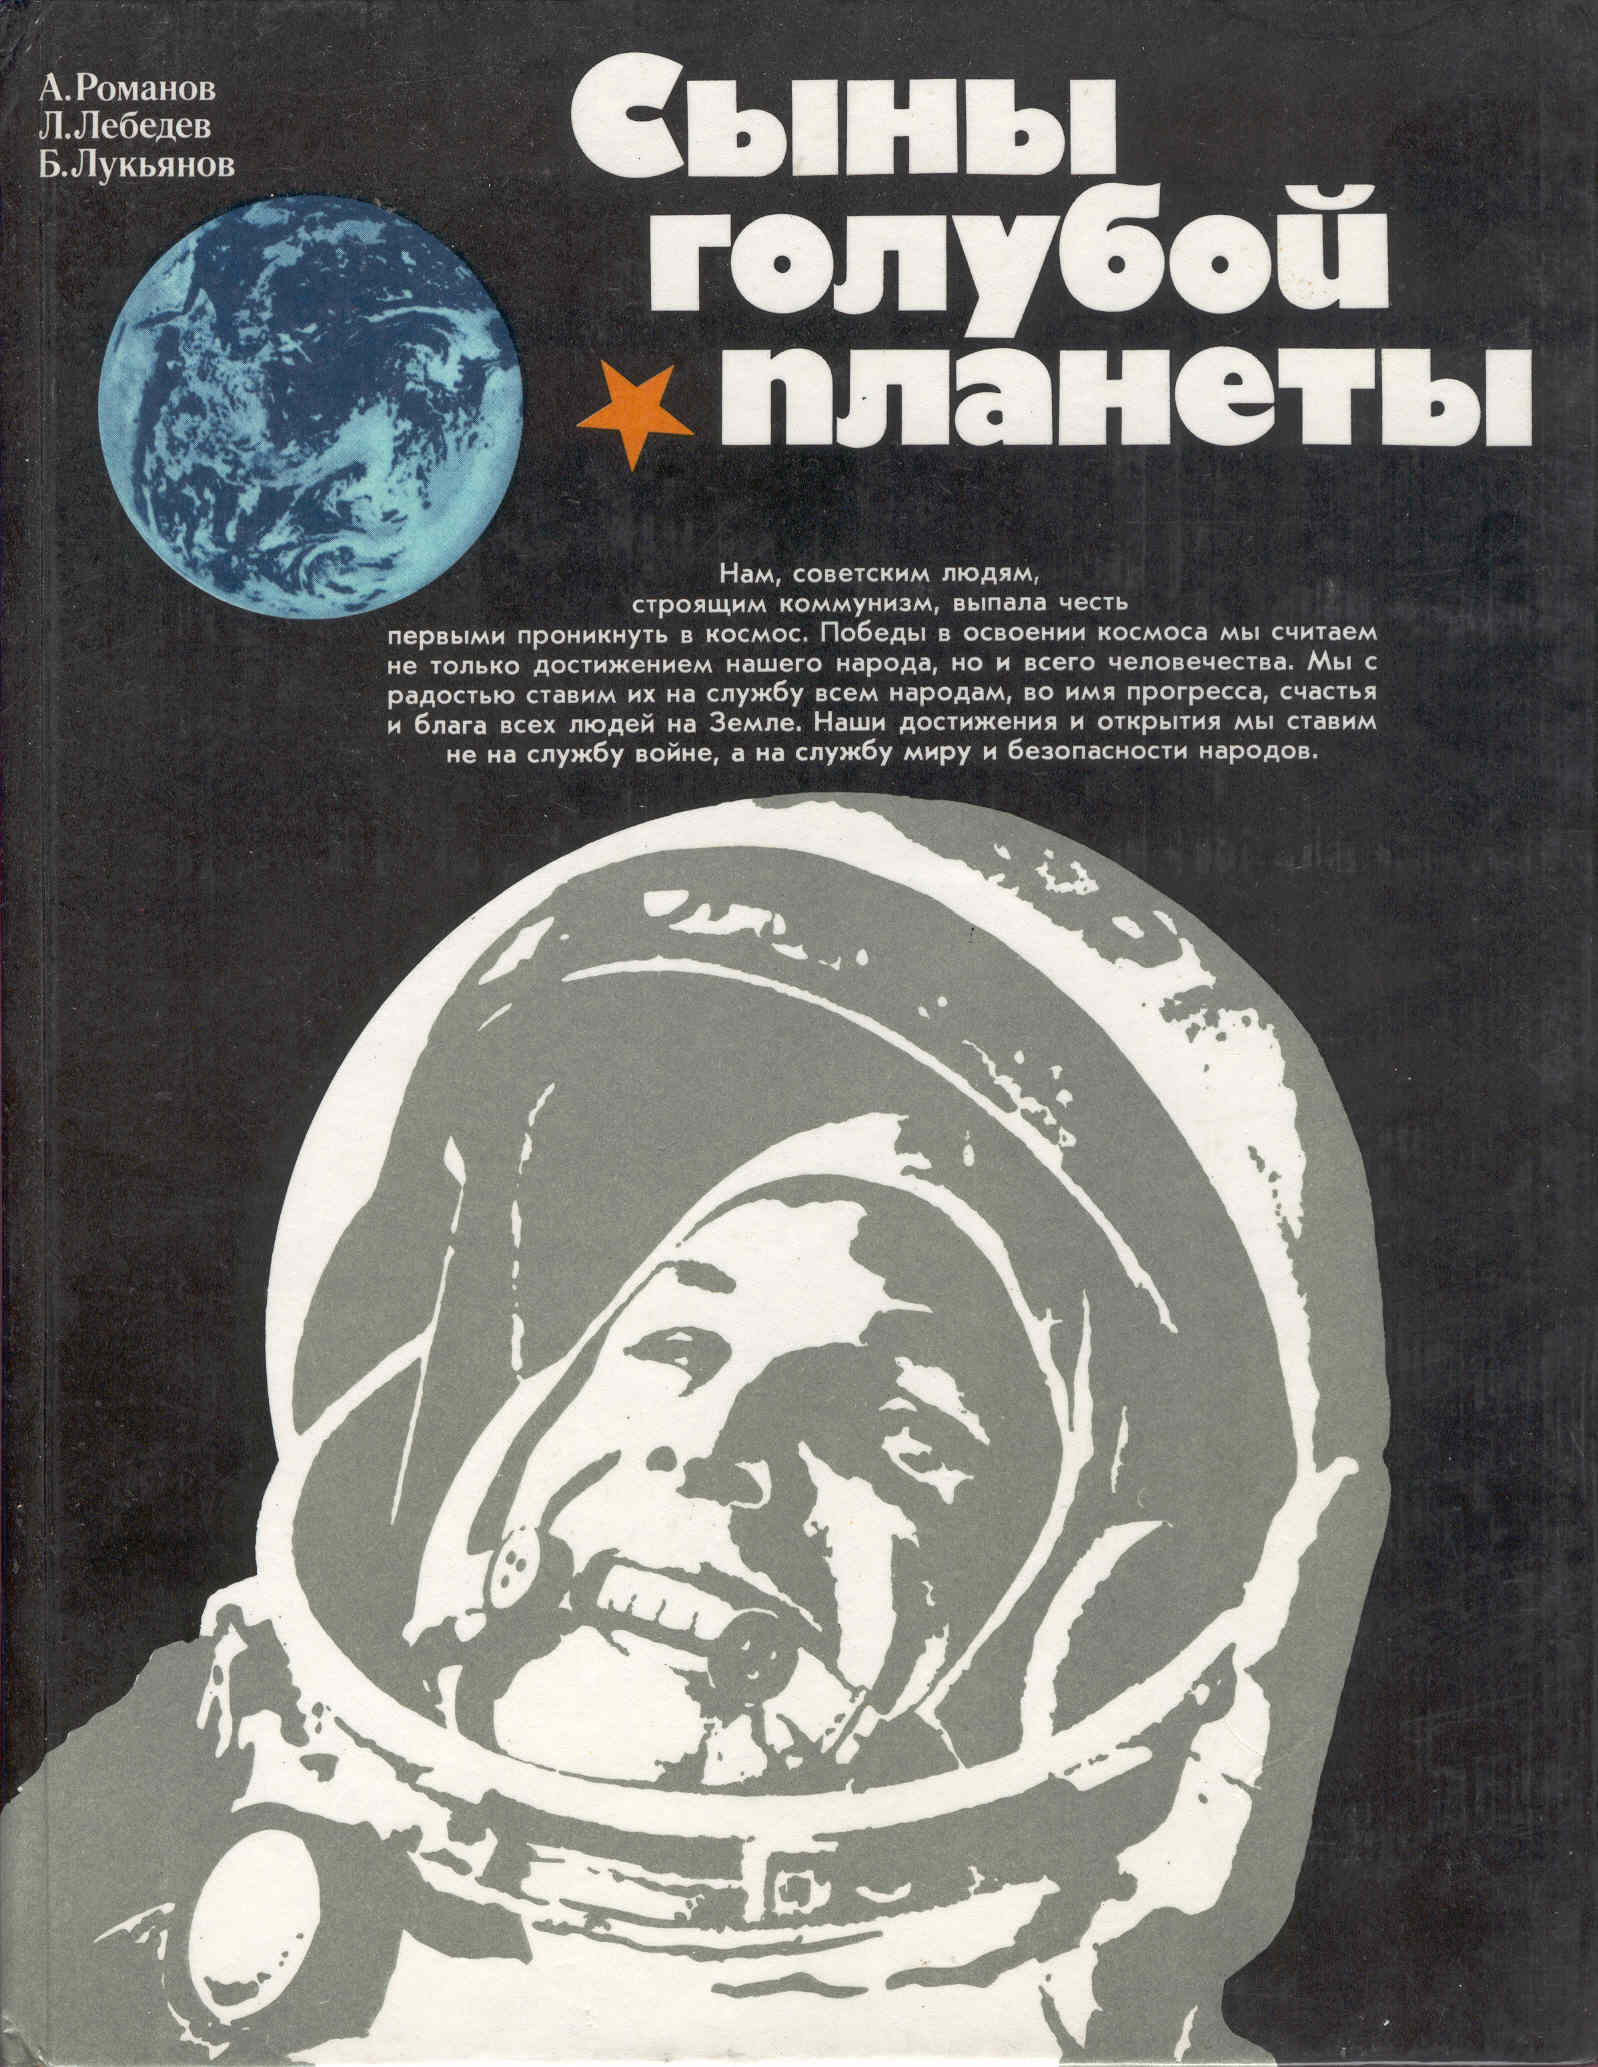 # cb165 13 cosmonauts autographed book `Sons of the Blue Planet`